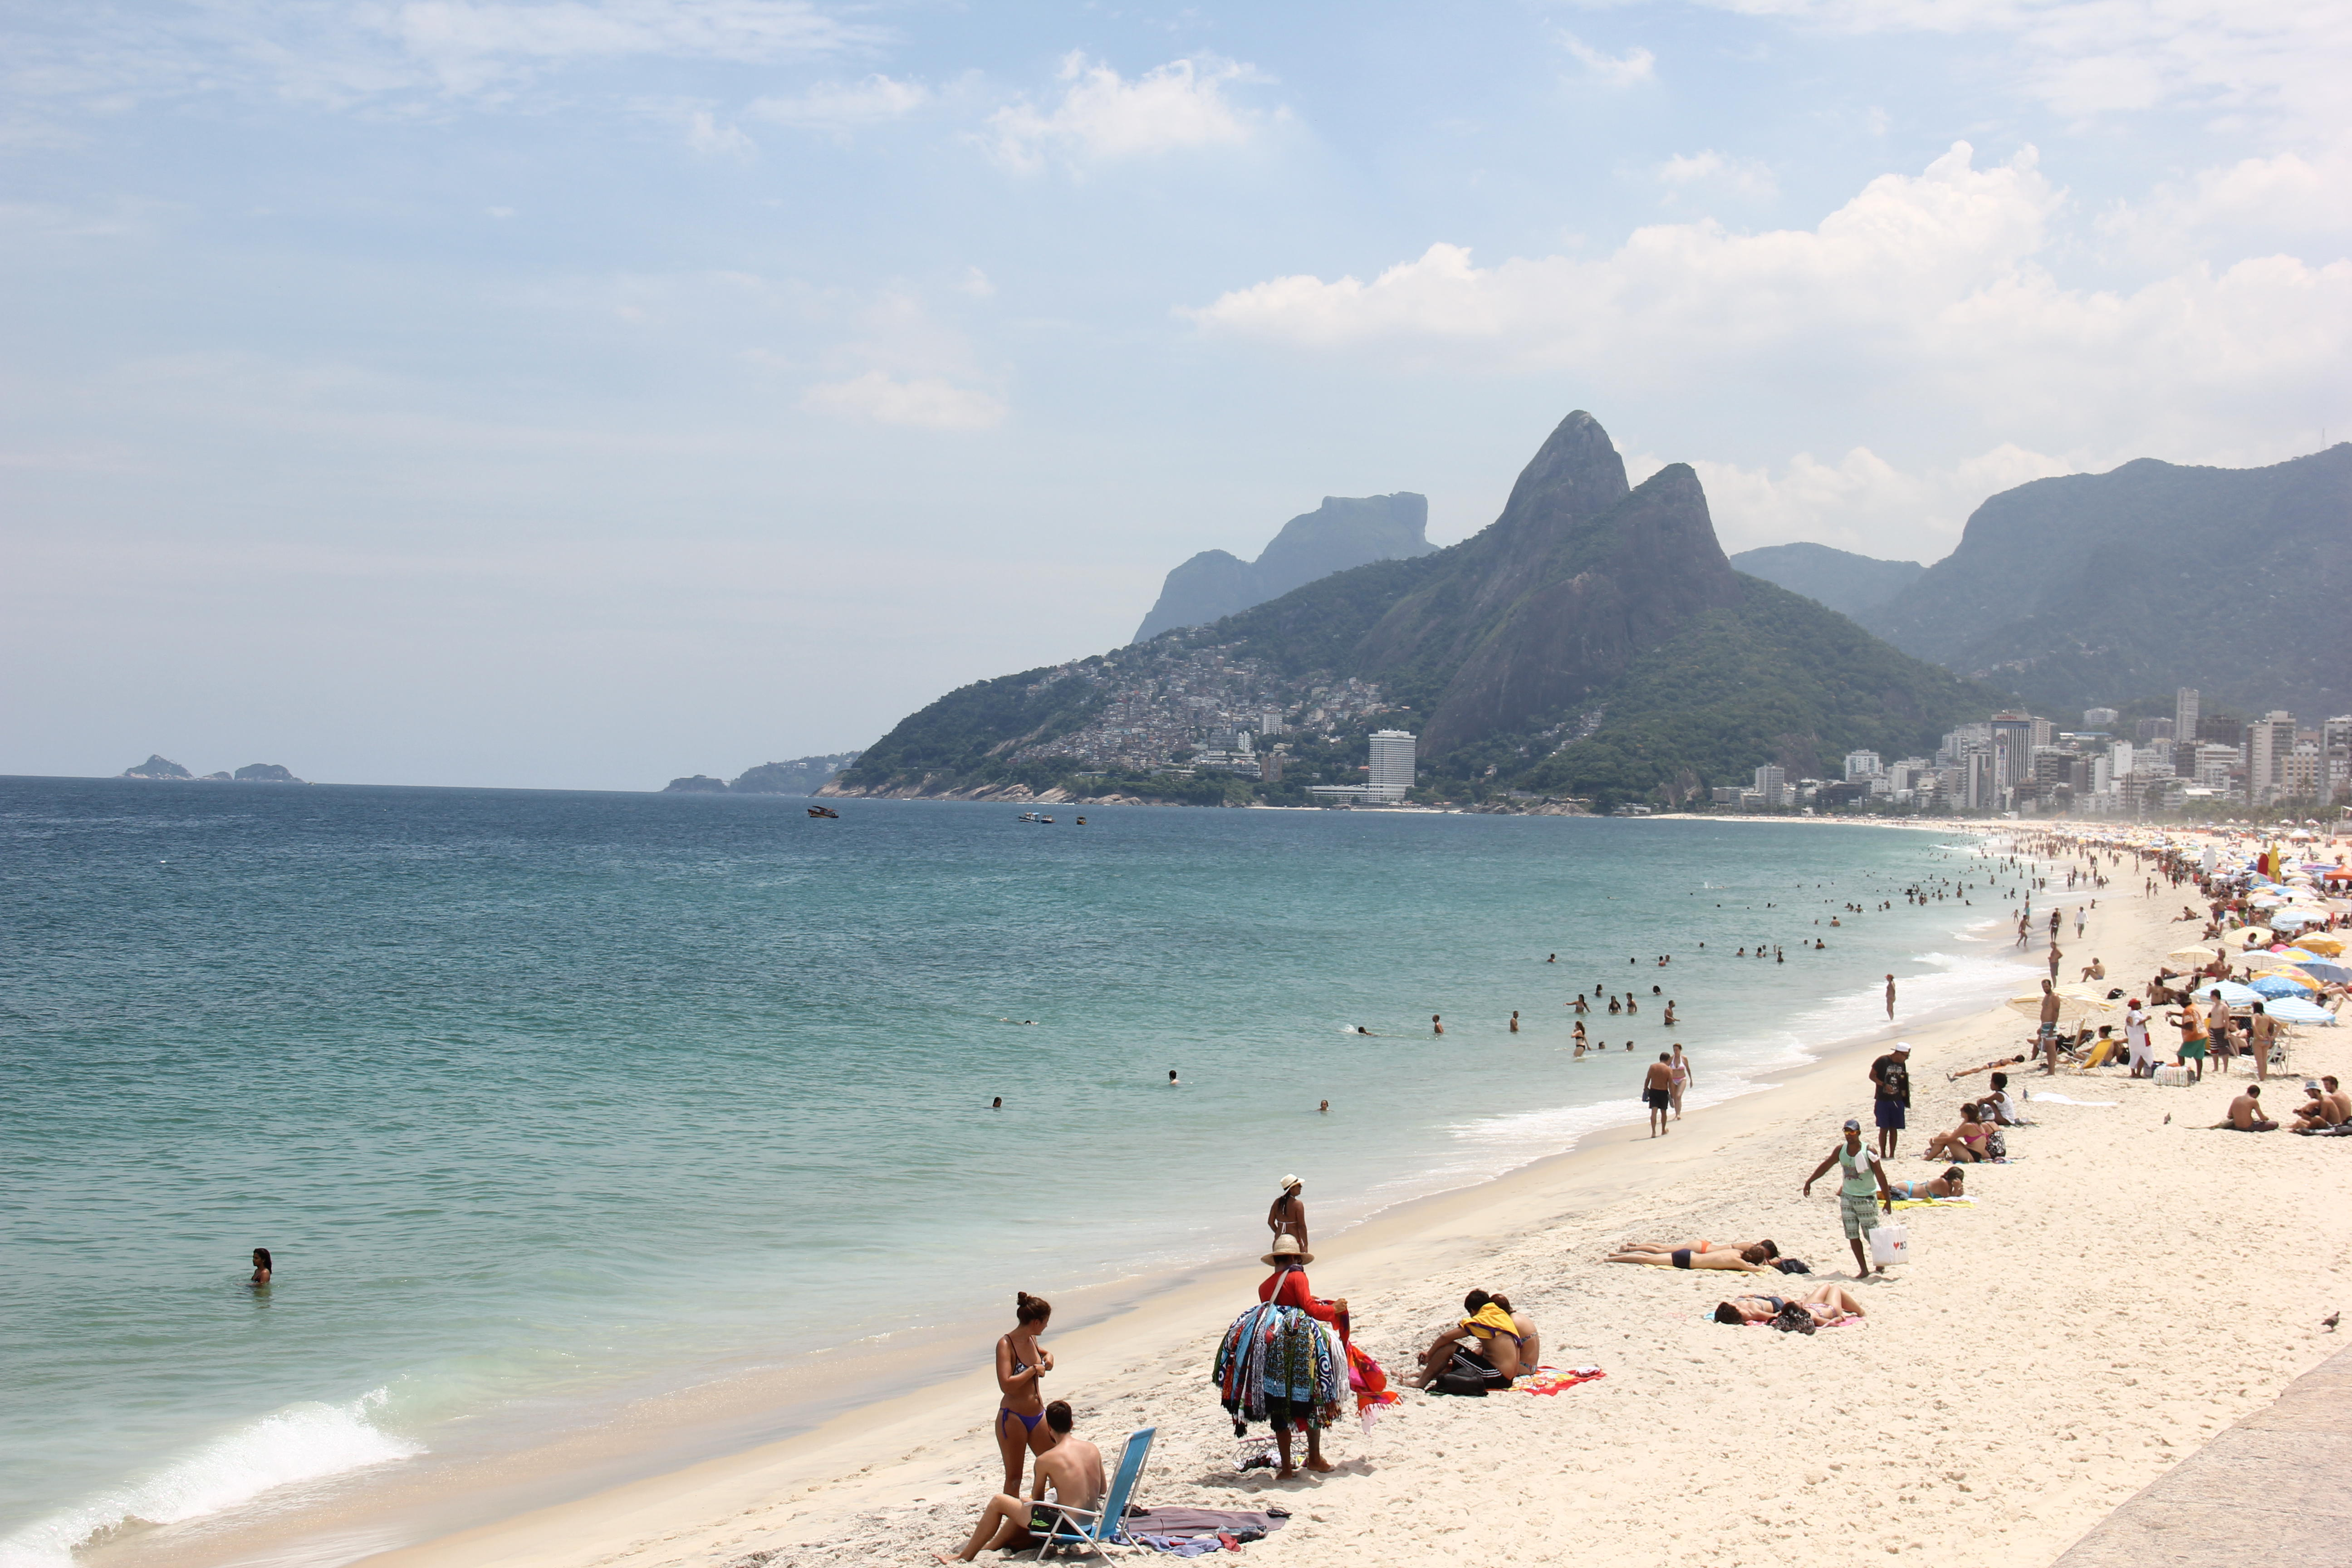 Rio de Janeiro, Brazil, 24 February 2016: With the strong heat, passing the 35 degrees celsius, locals and tourists enjoying the the Southern Rio beaches even during weekdays. View of Ipanema and Leblon beaches that were in the clear and calm waters on th